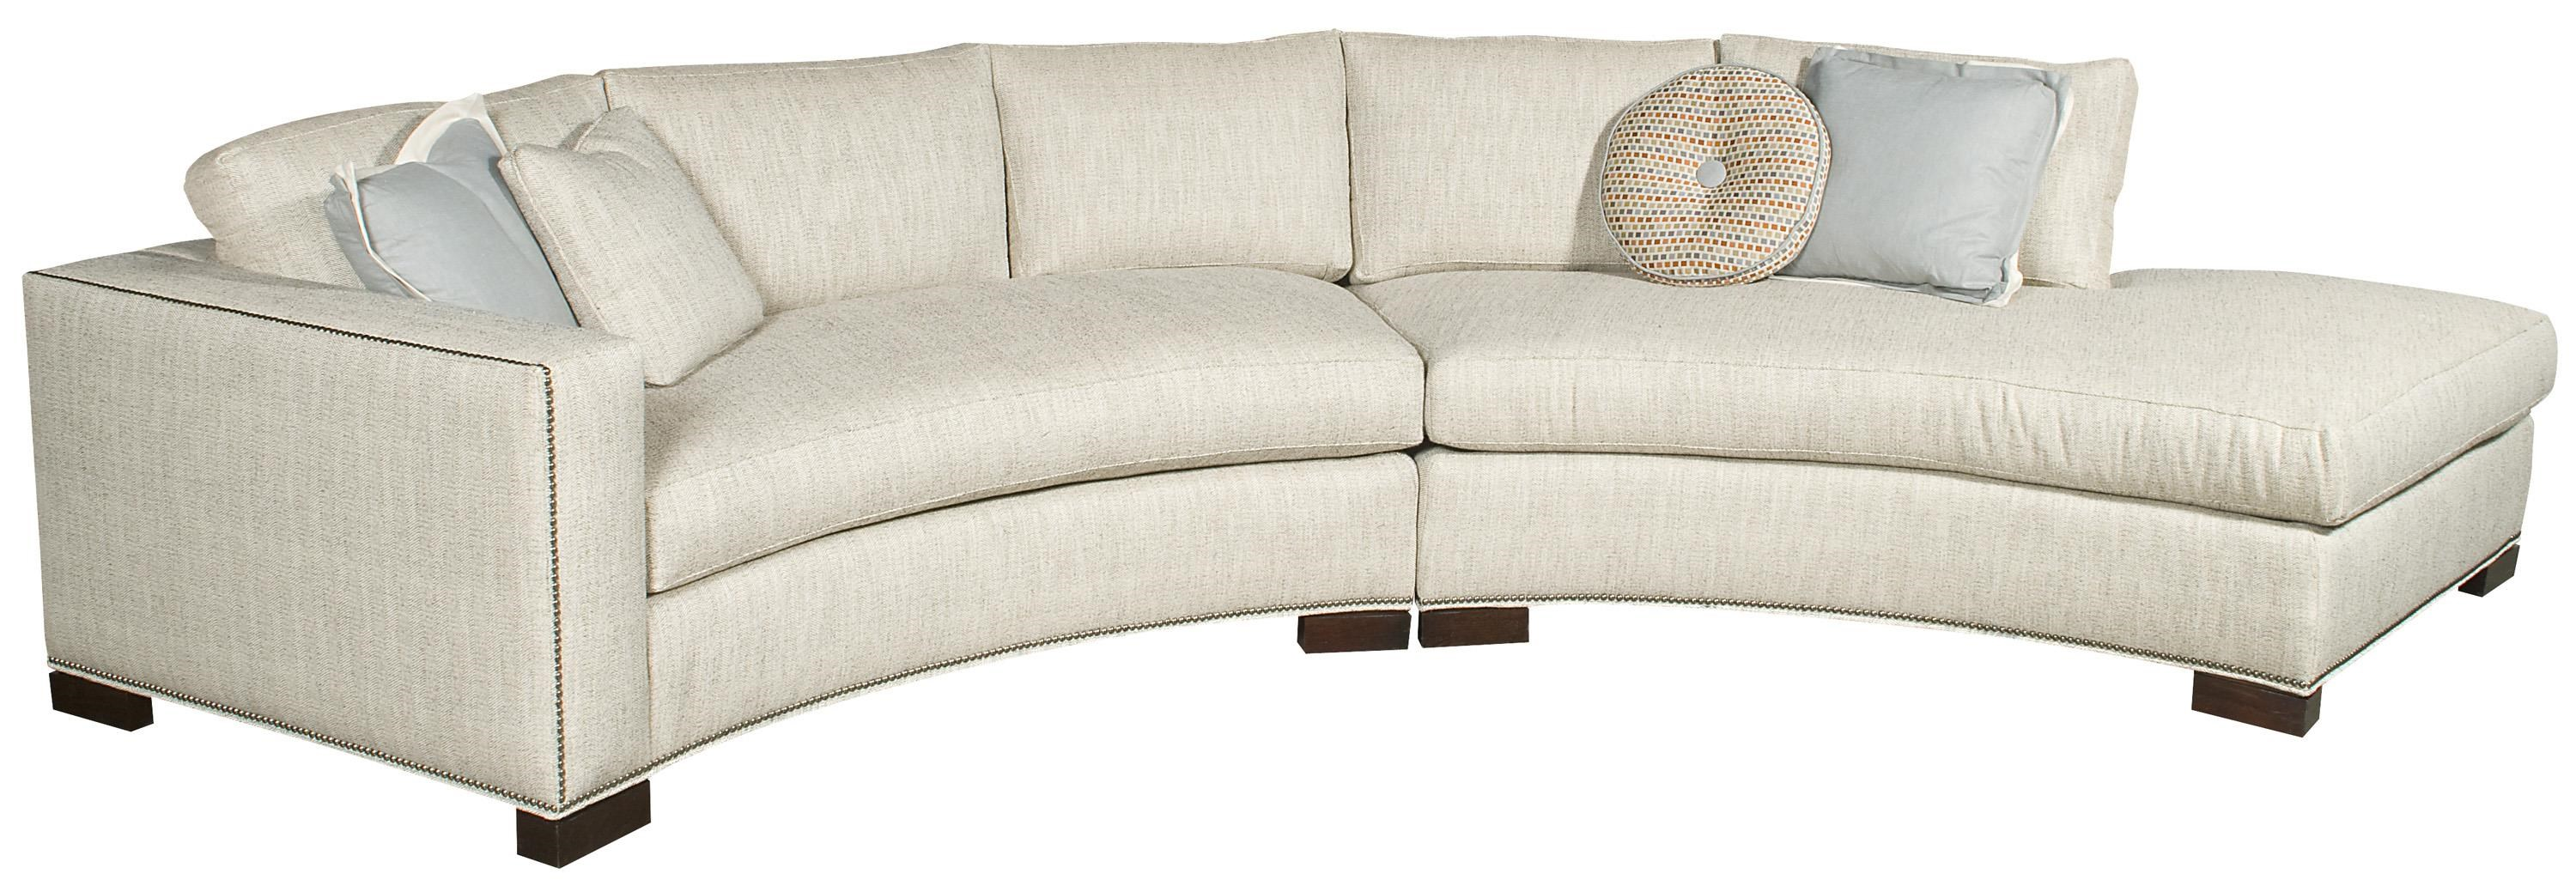 vanguard furniture michael weiss curved one arm bennett sectional with chaise belfort furniture sectional sofas